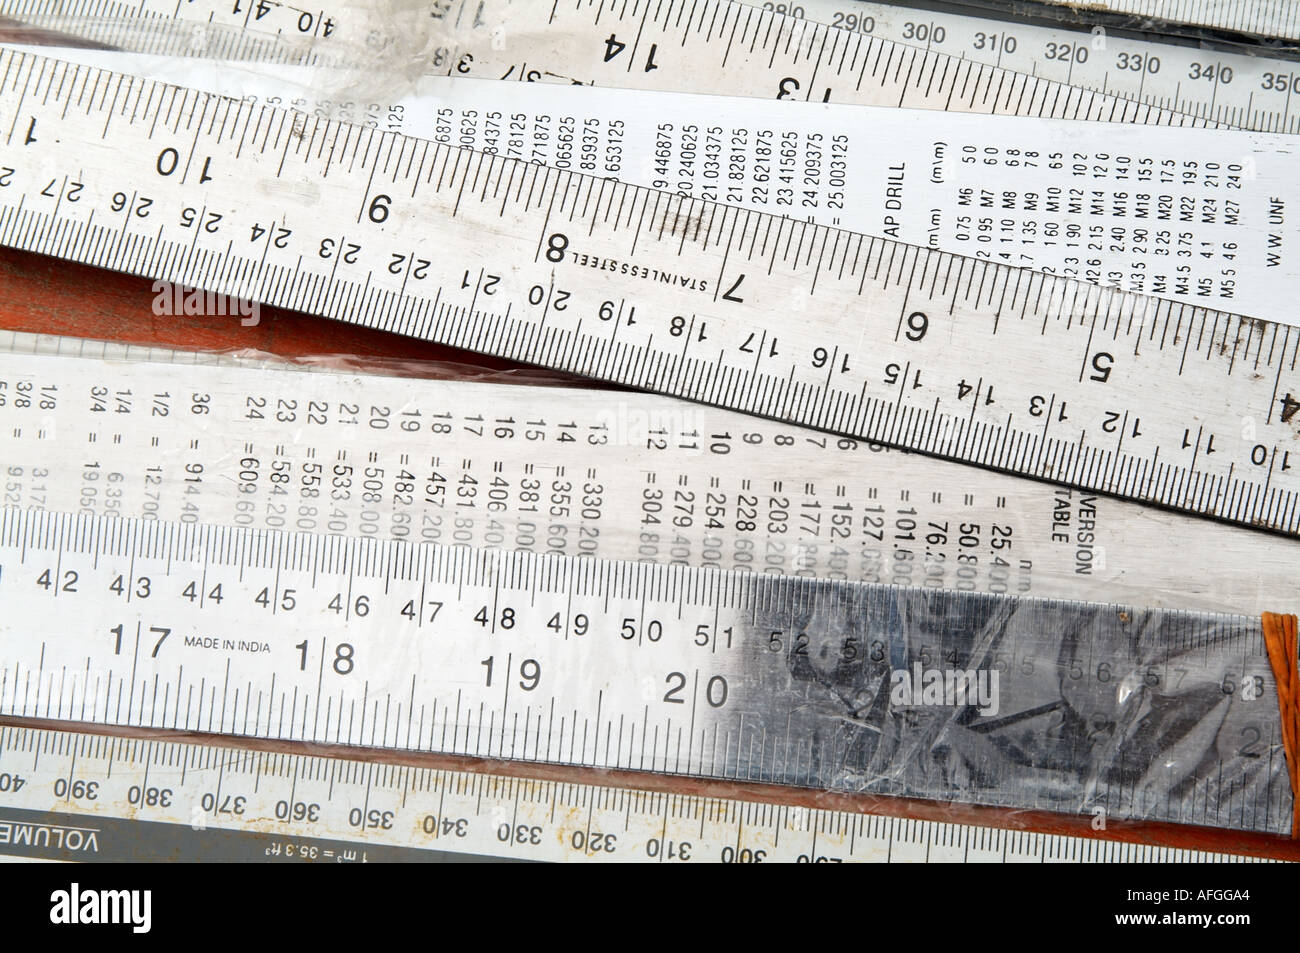 Ruler Measure Measurement Distance Inch Feet Foot Mm Cm Millimetre Centimetre Meter Tolerance Engineering Engineer